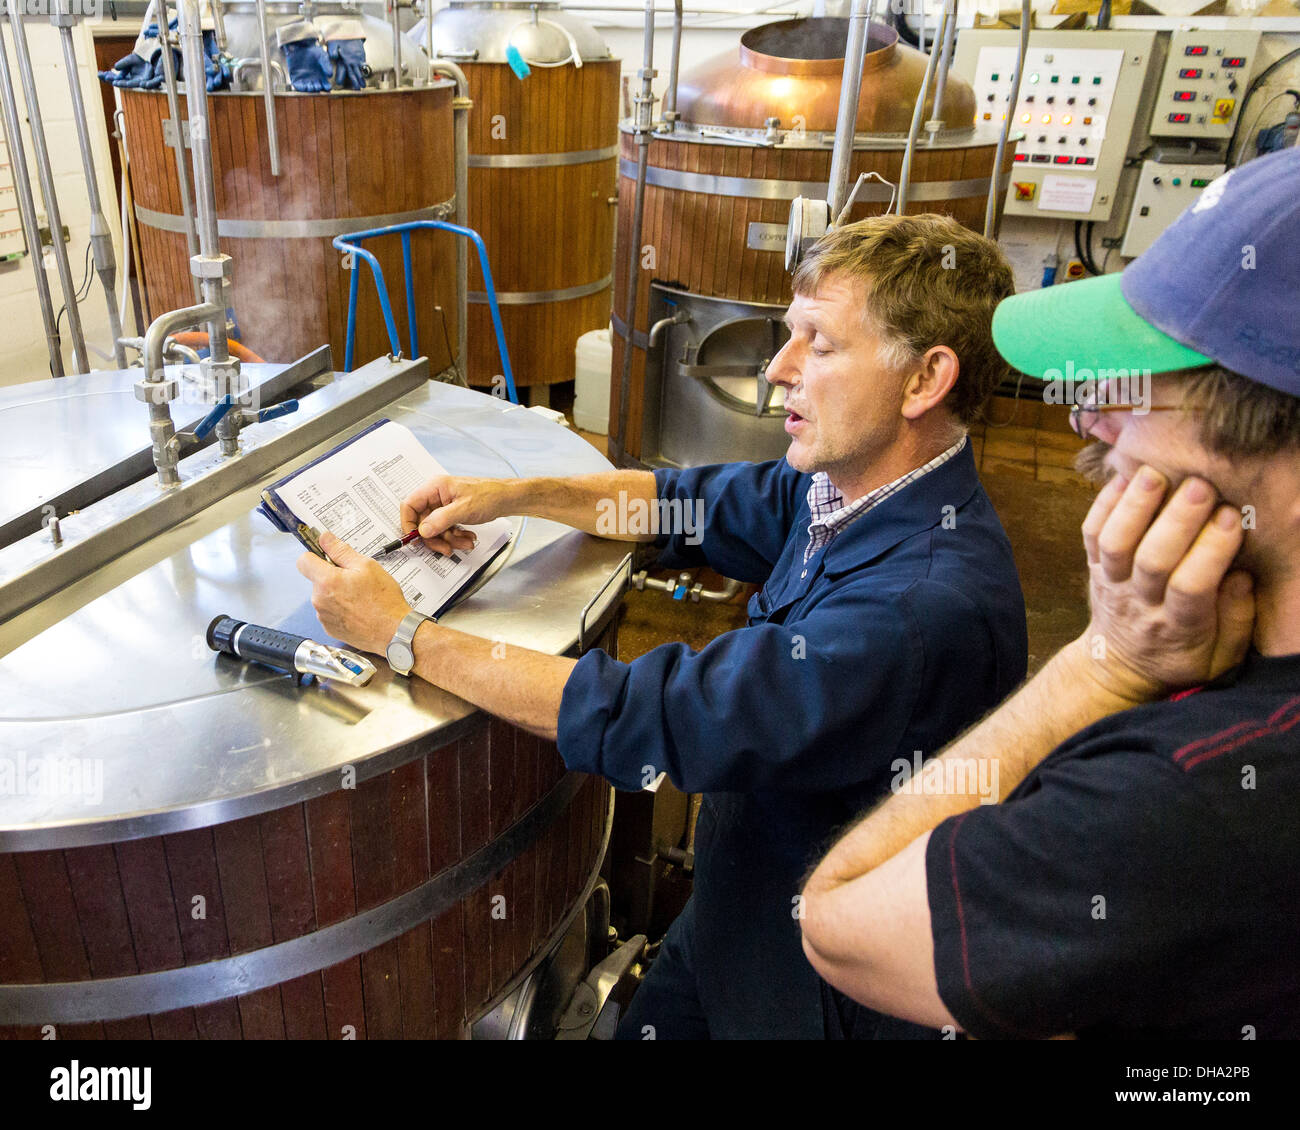 7 Sep 2012, Horsham, UK: Ian Burgess the Head Brewer at WJ King Brewery explaining the ale brewing process - Stock Image